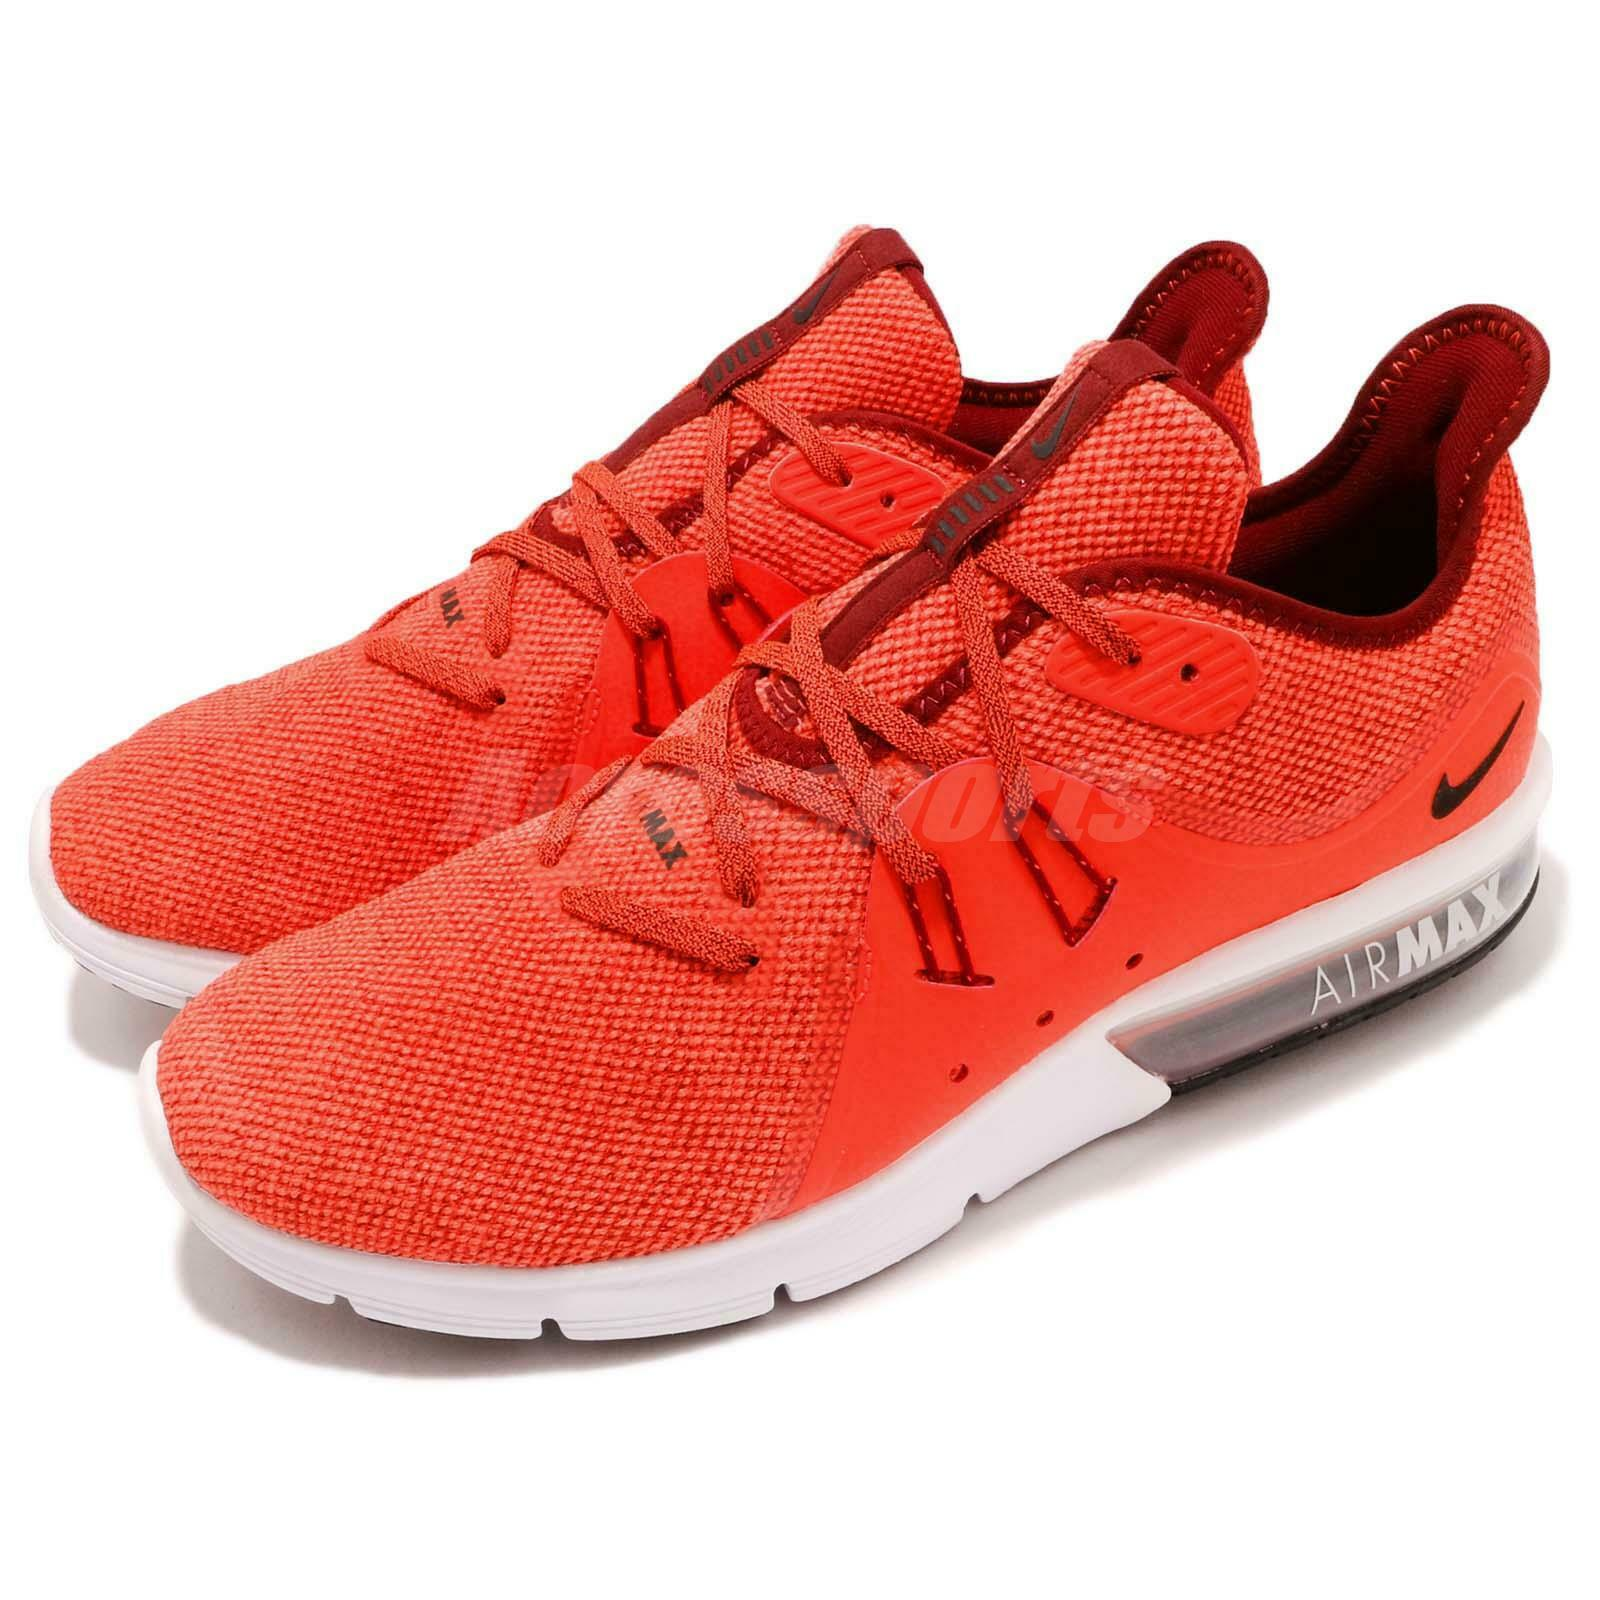 Nike Air Max Sequent 3 III Total Crimson Men Running shoes Sneakers 921694-600